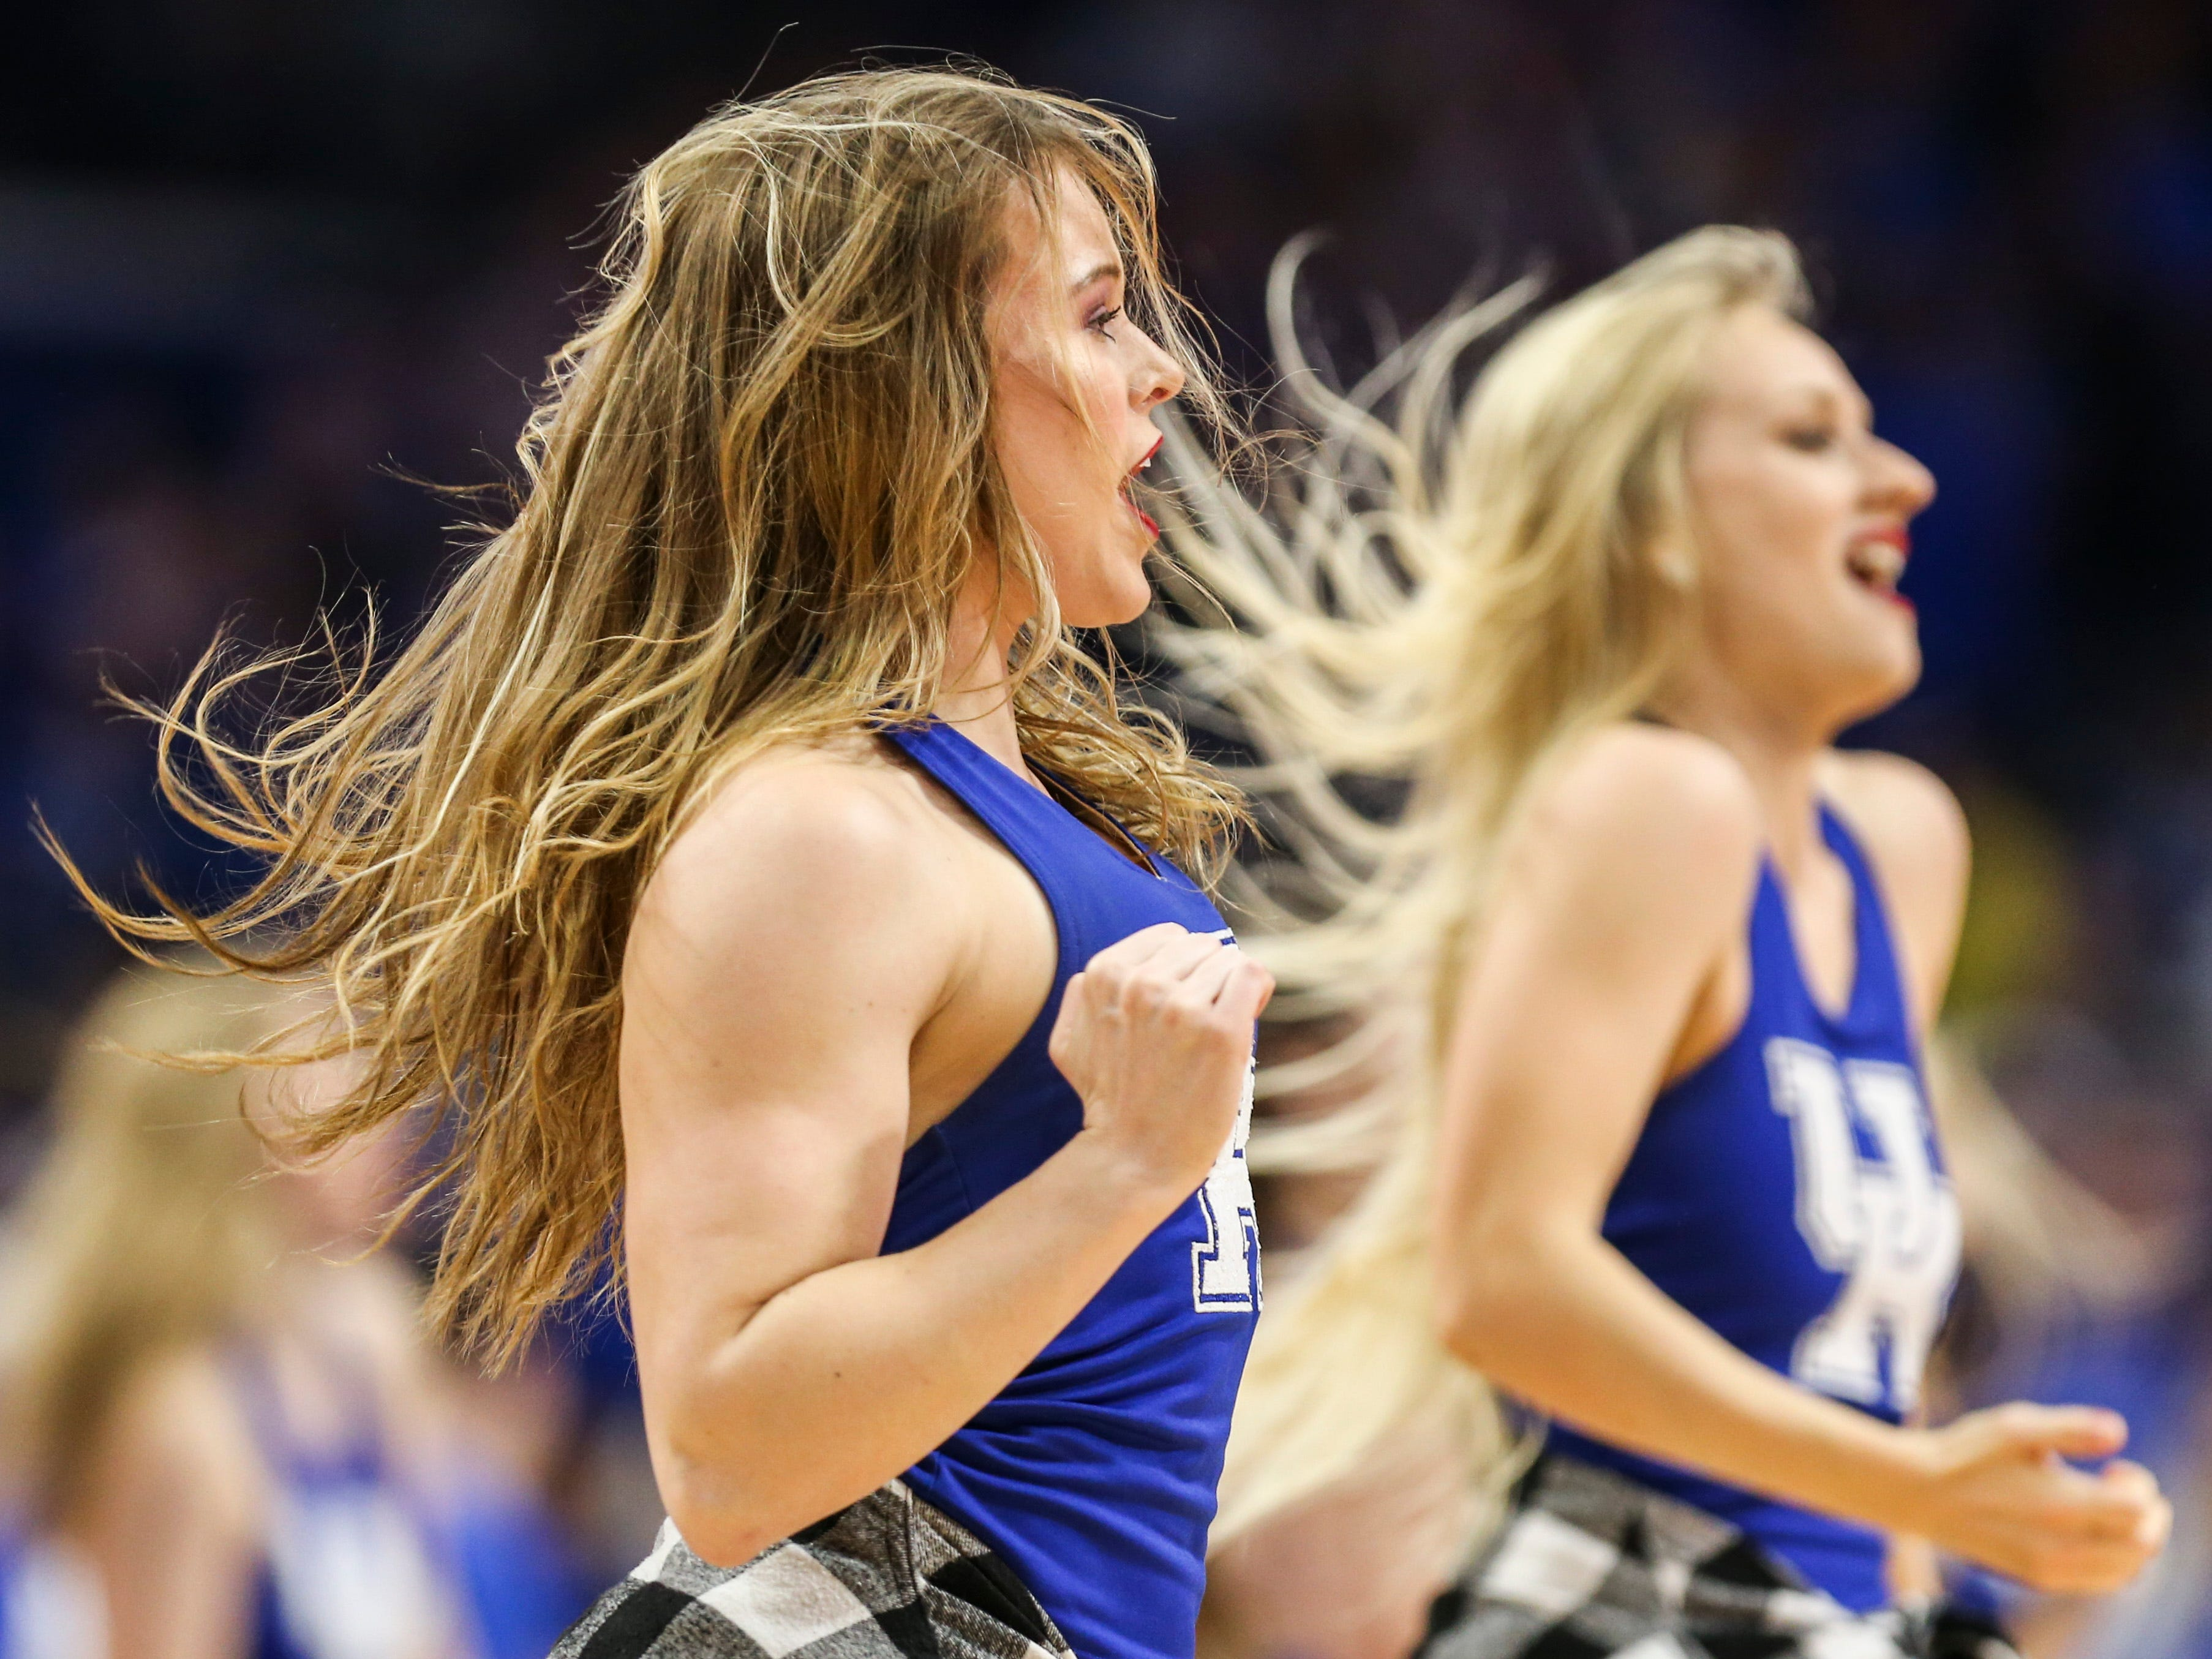 Kentucky cheerleaders perform during a timeout in the first half Tuesday night against South Carolina at Rupp Arena. Feb. 5, 2019